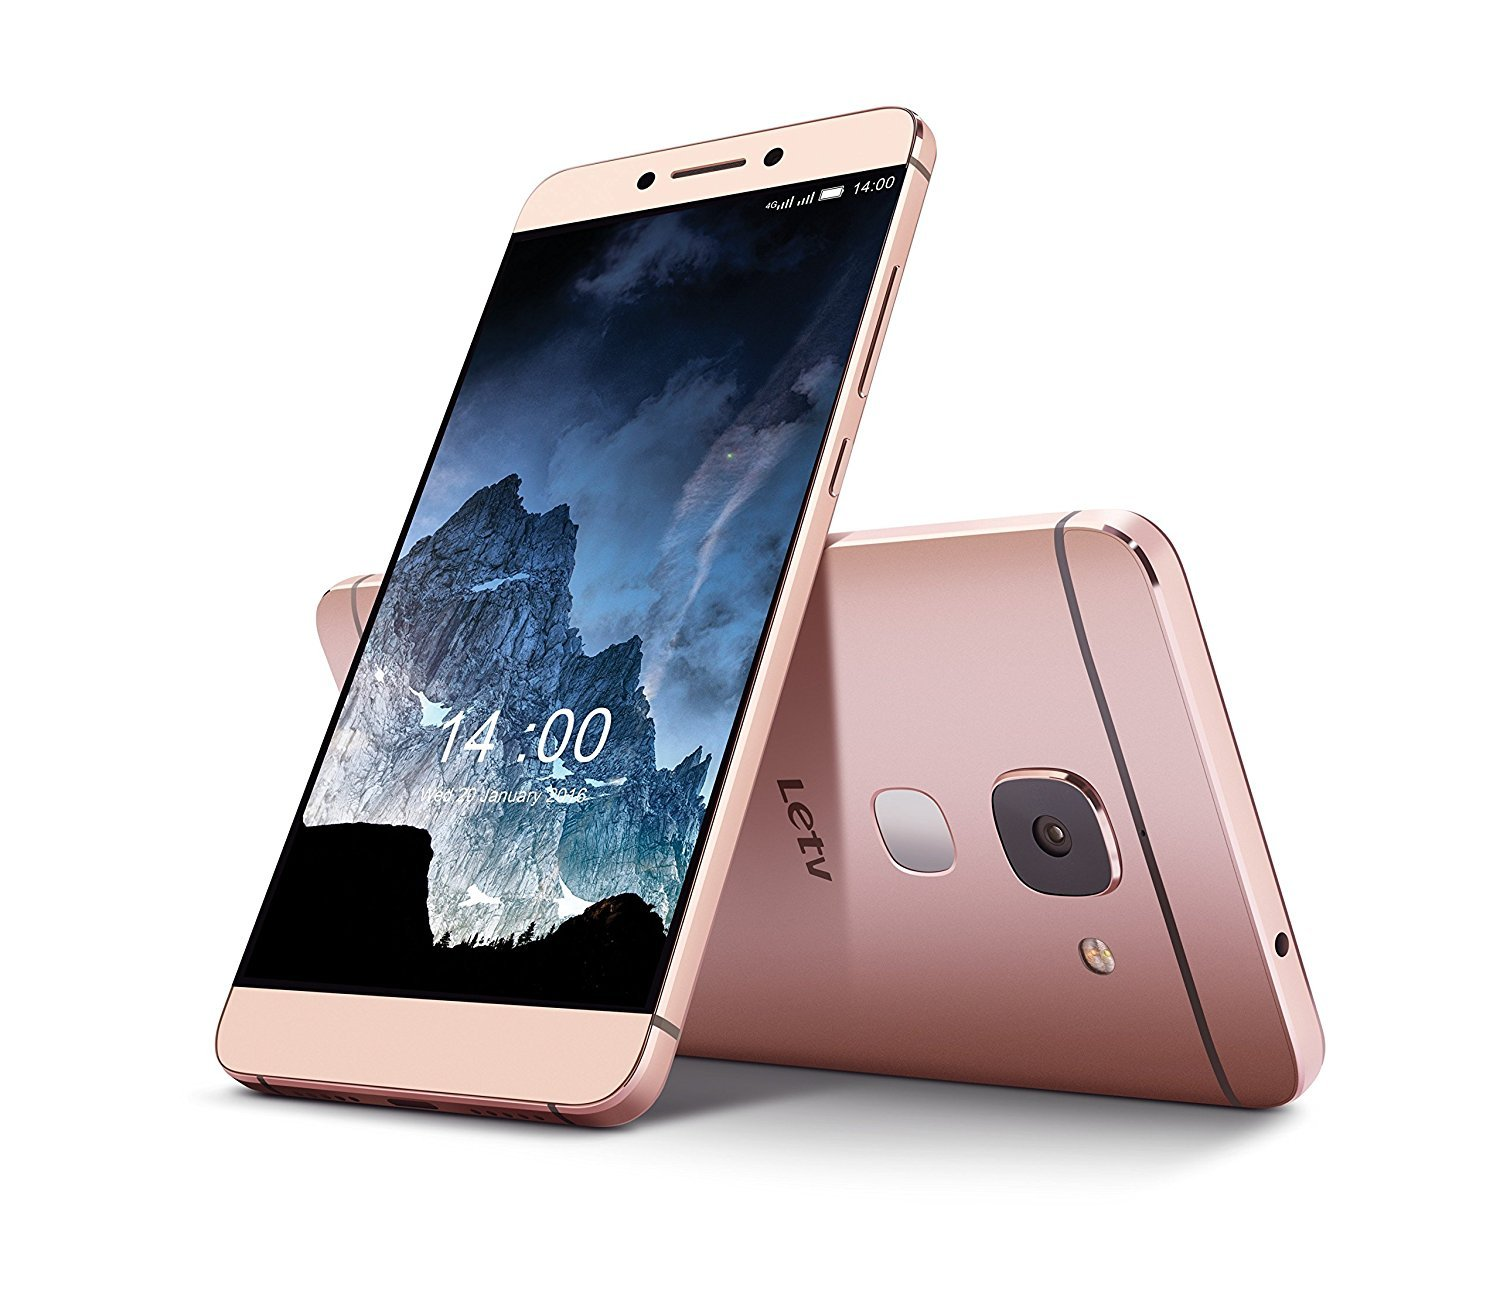 LeEco Le Max 2 - images